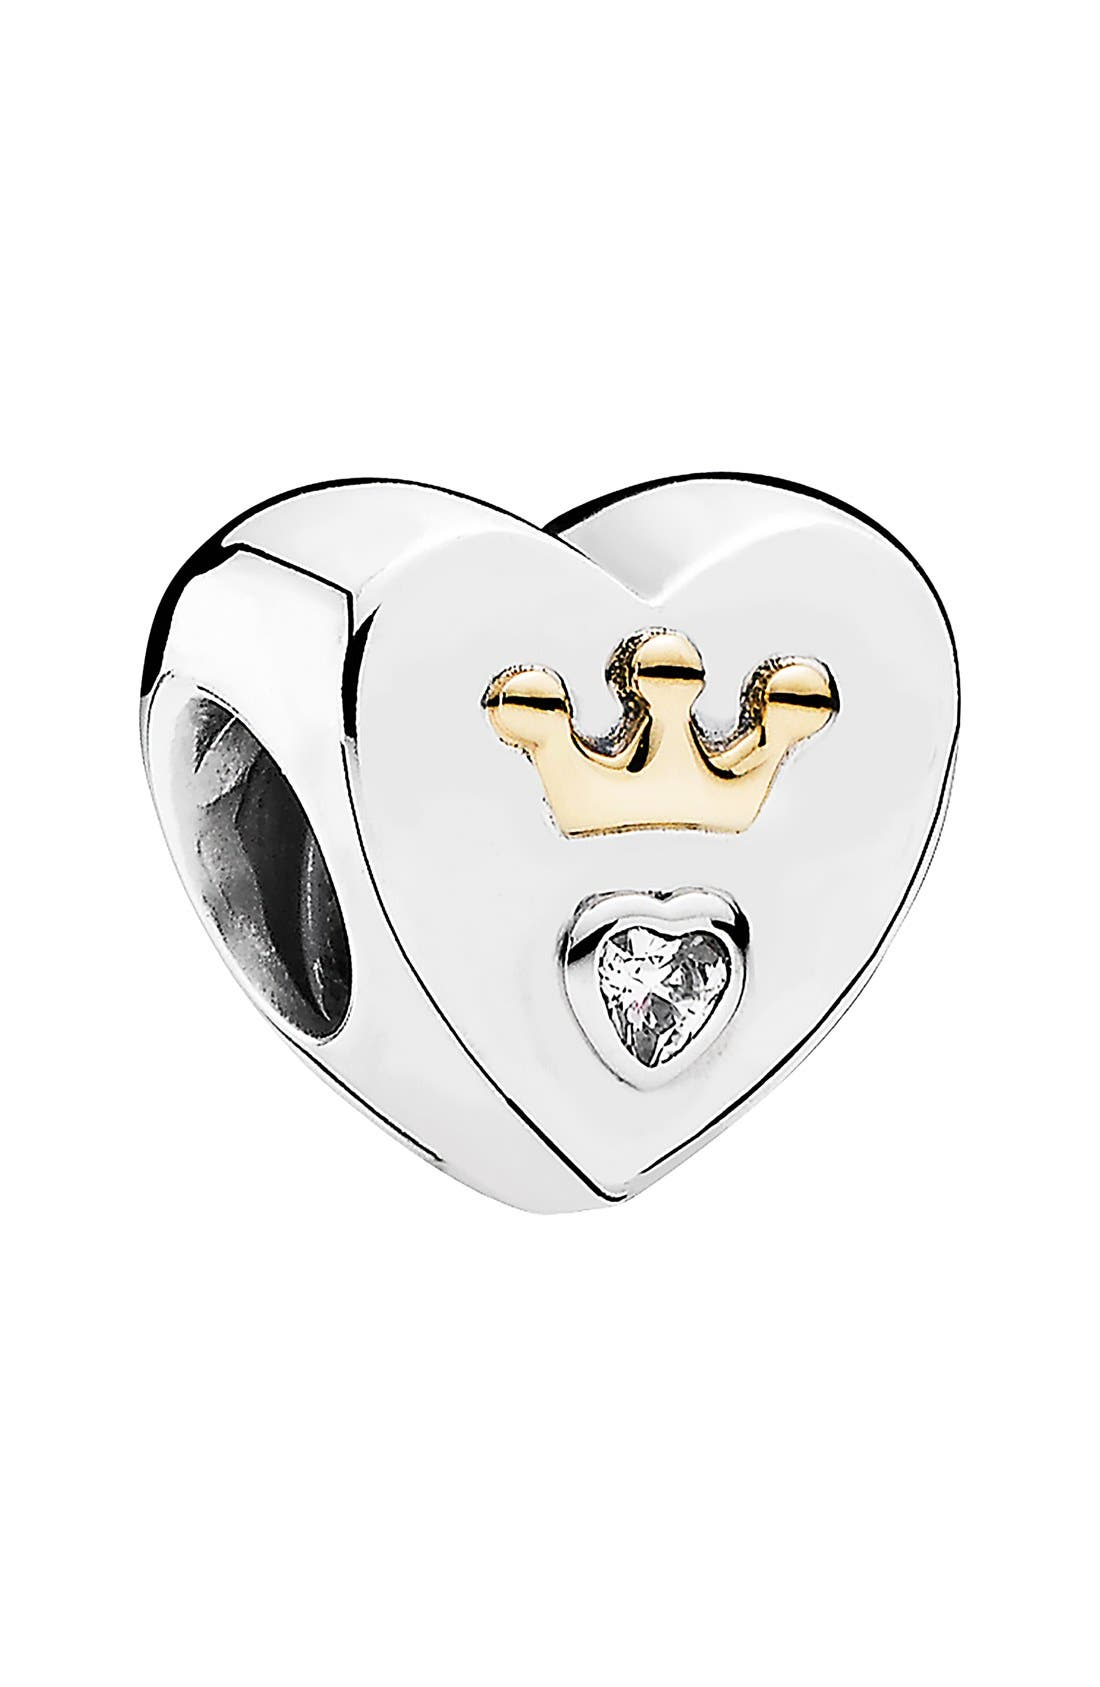 Alternate Image 1 Selected - PANDORA 'Majestic Heart' Cubic Zirconia Charm